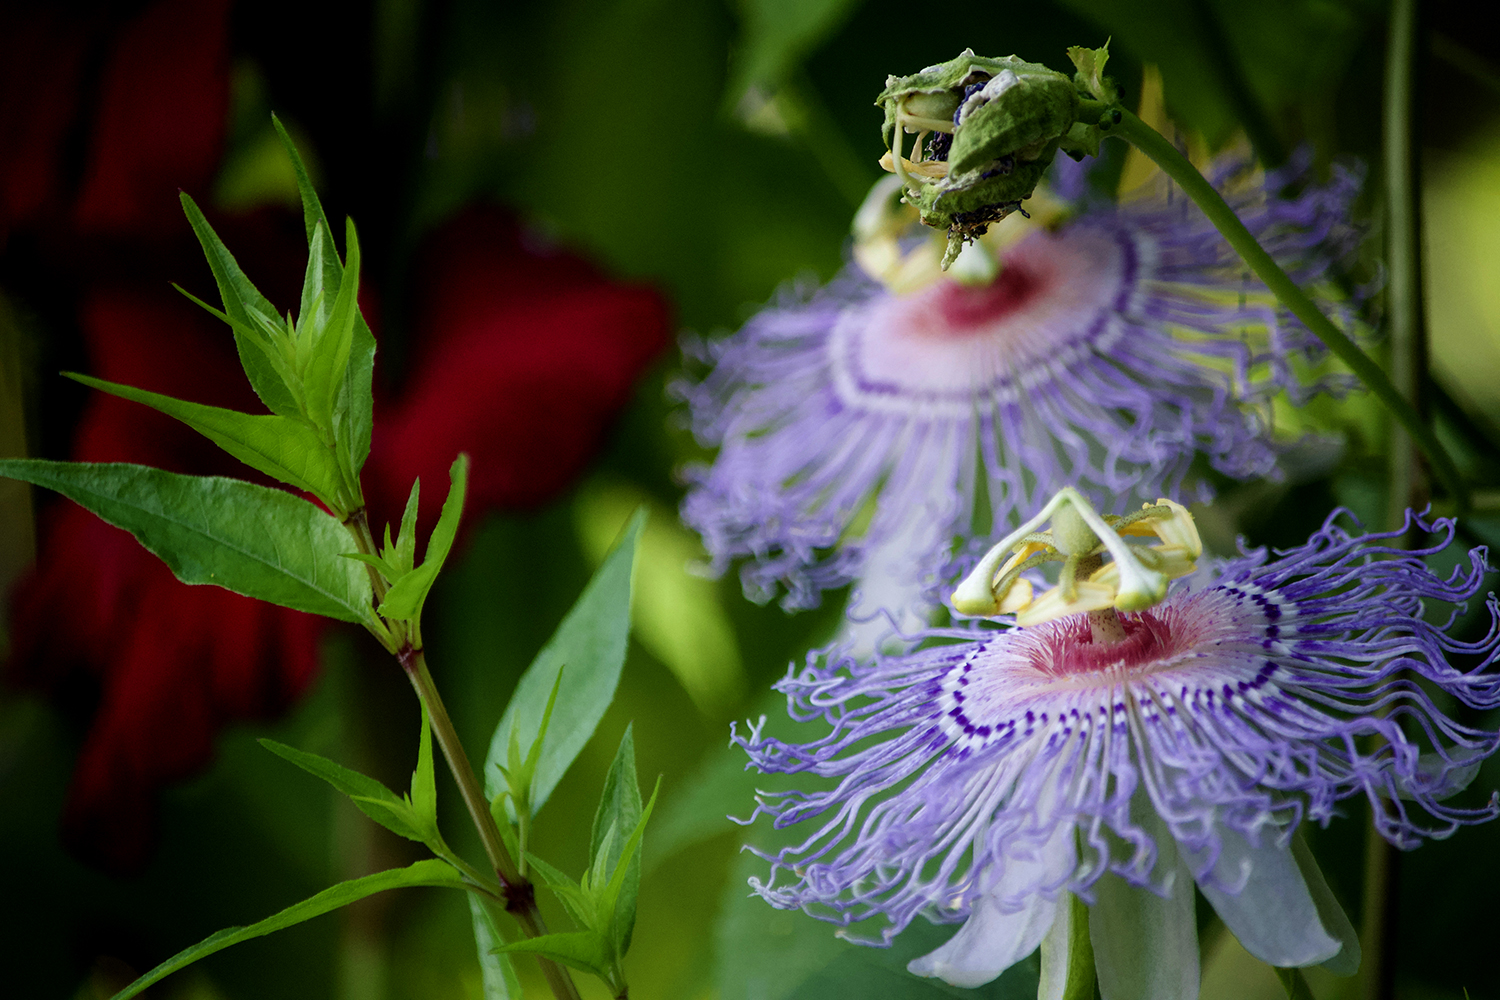 Passionflower and Gladiola